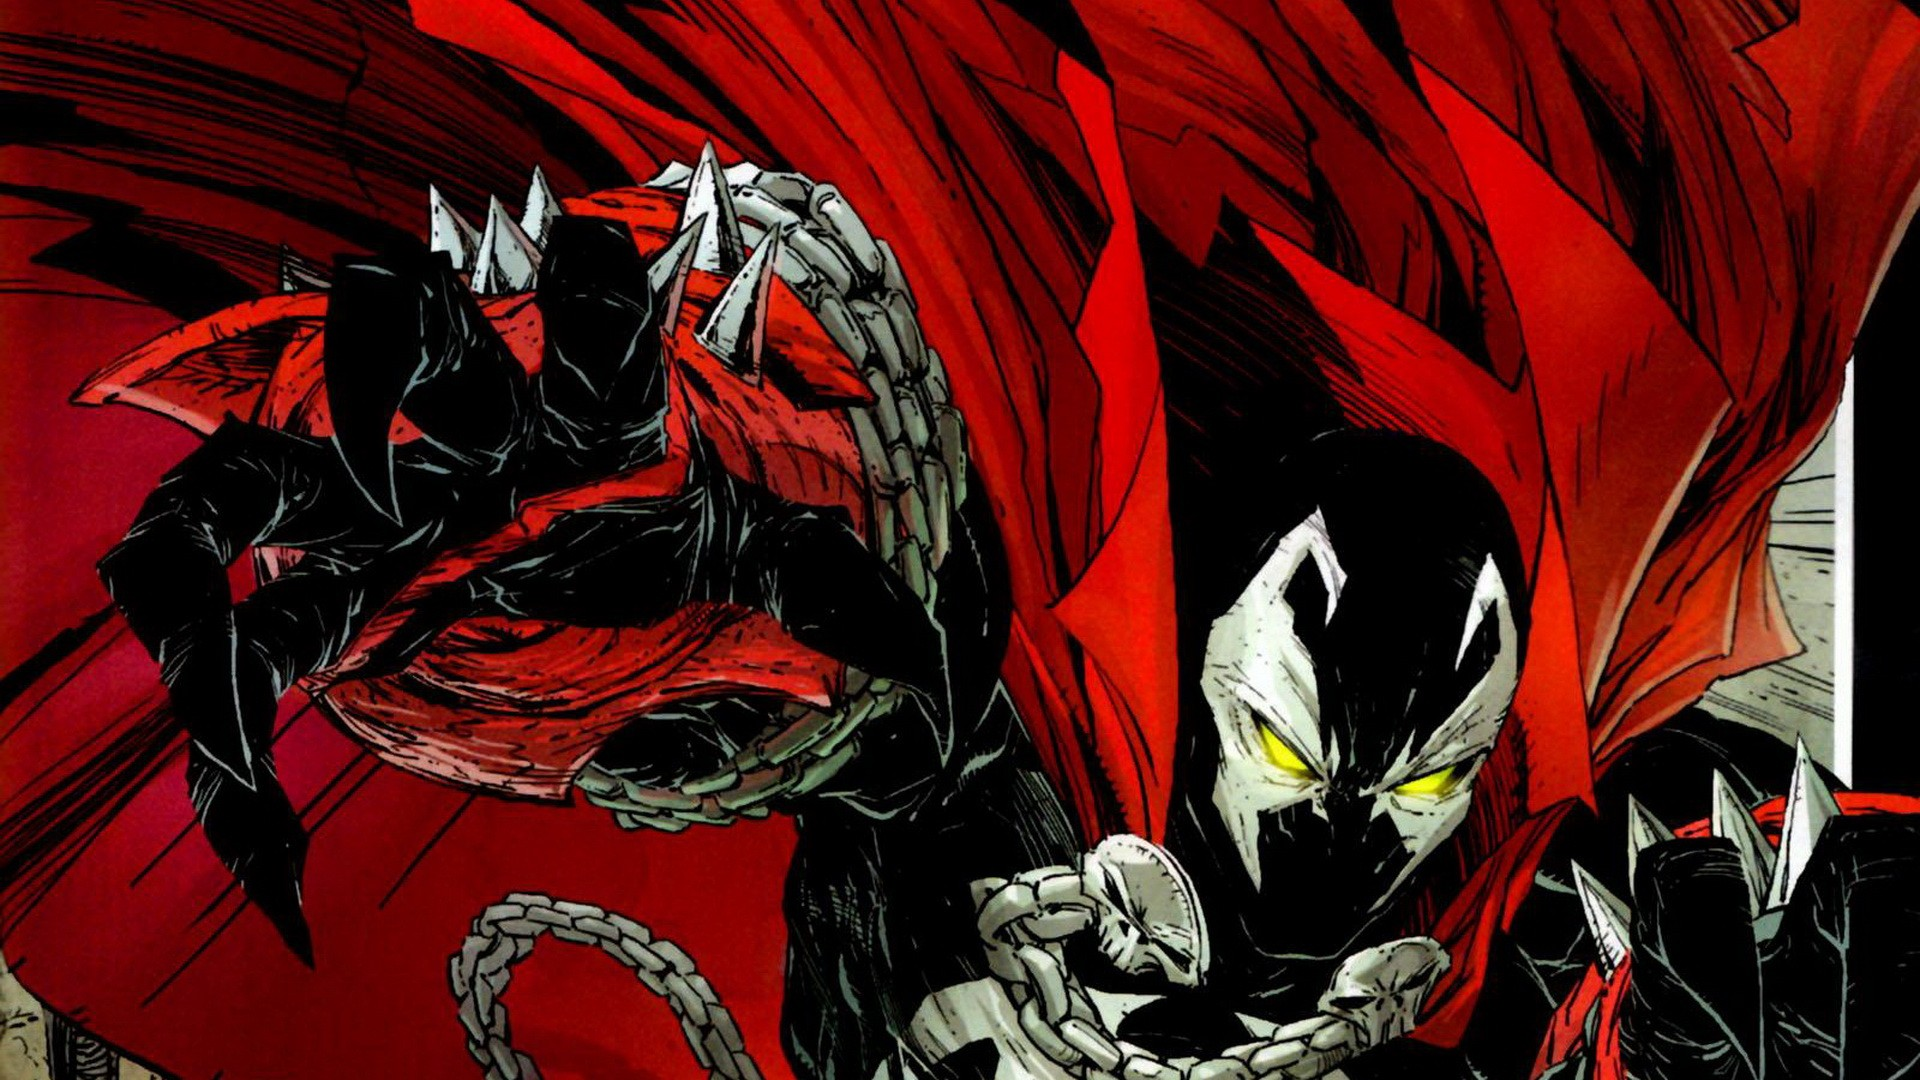 Spawn Computer Wallpapers, Desktop Backgrounds | 1920x1080 | ID:291893